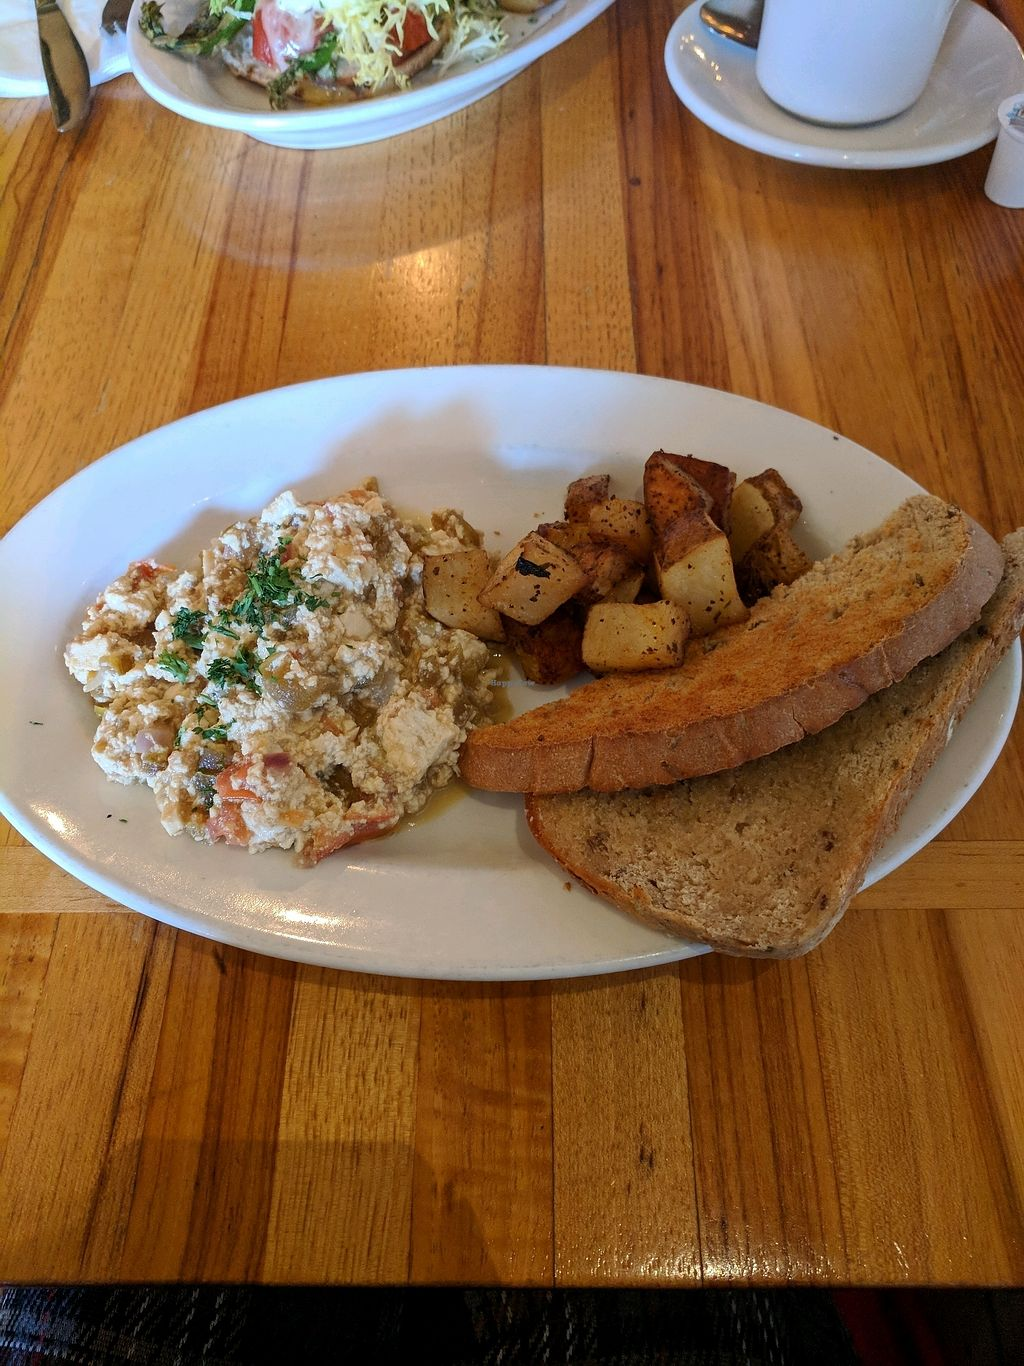 """Photo of The Autumn Cafe  by <a href=""""/members/profile/ToriKriegel"""">ToriKriegel</a> <br/>Tofu scramble <br/> January 28, 2018  - <a href='/contact/abuse/image/51369/351929'>Report</a>"""